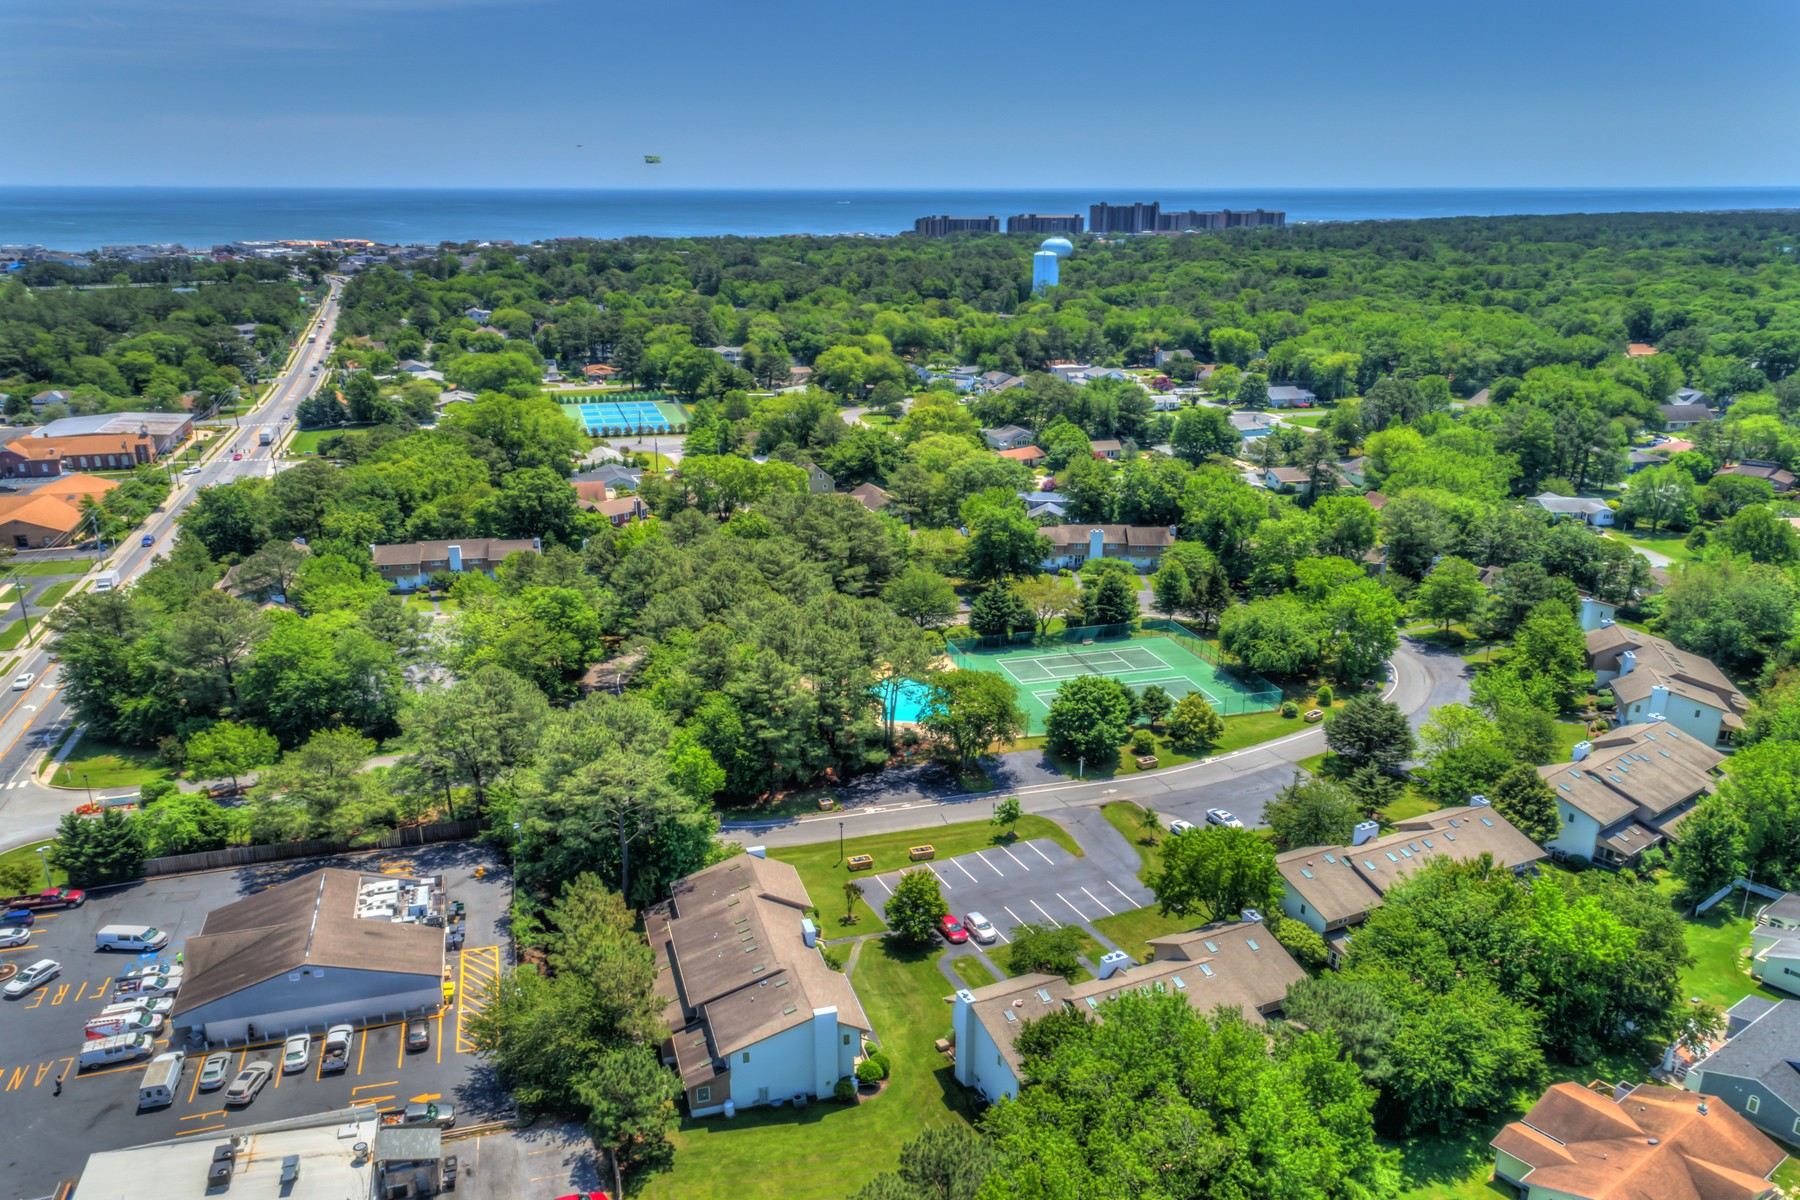 Кондоминиум для того Продажа на 705 Bayberry Circle , 705, Bethany Beach, DE 19930 705 Bayberry Cir 705, Bethany Beach, Делавэр 19930 Соединенные Штаты